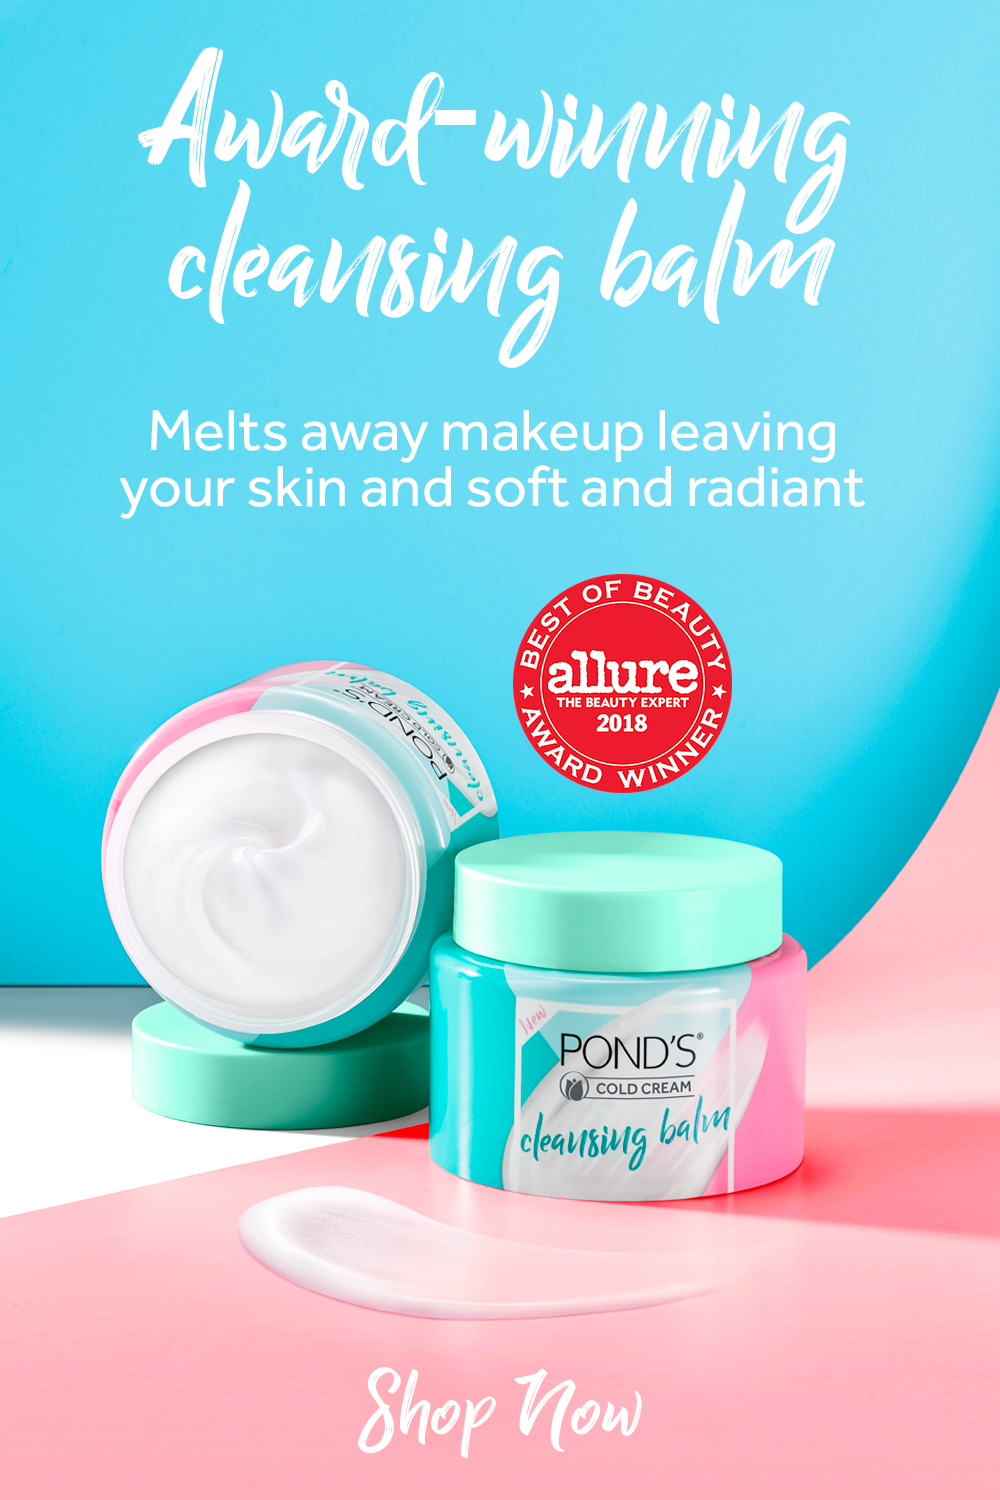 Pond S Cleansing Balm And Makeup Remover Cleansing Balm The Balm Makeup Remover